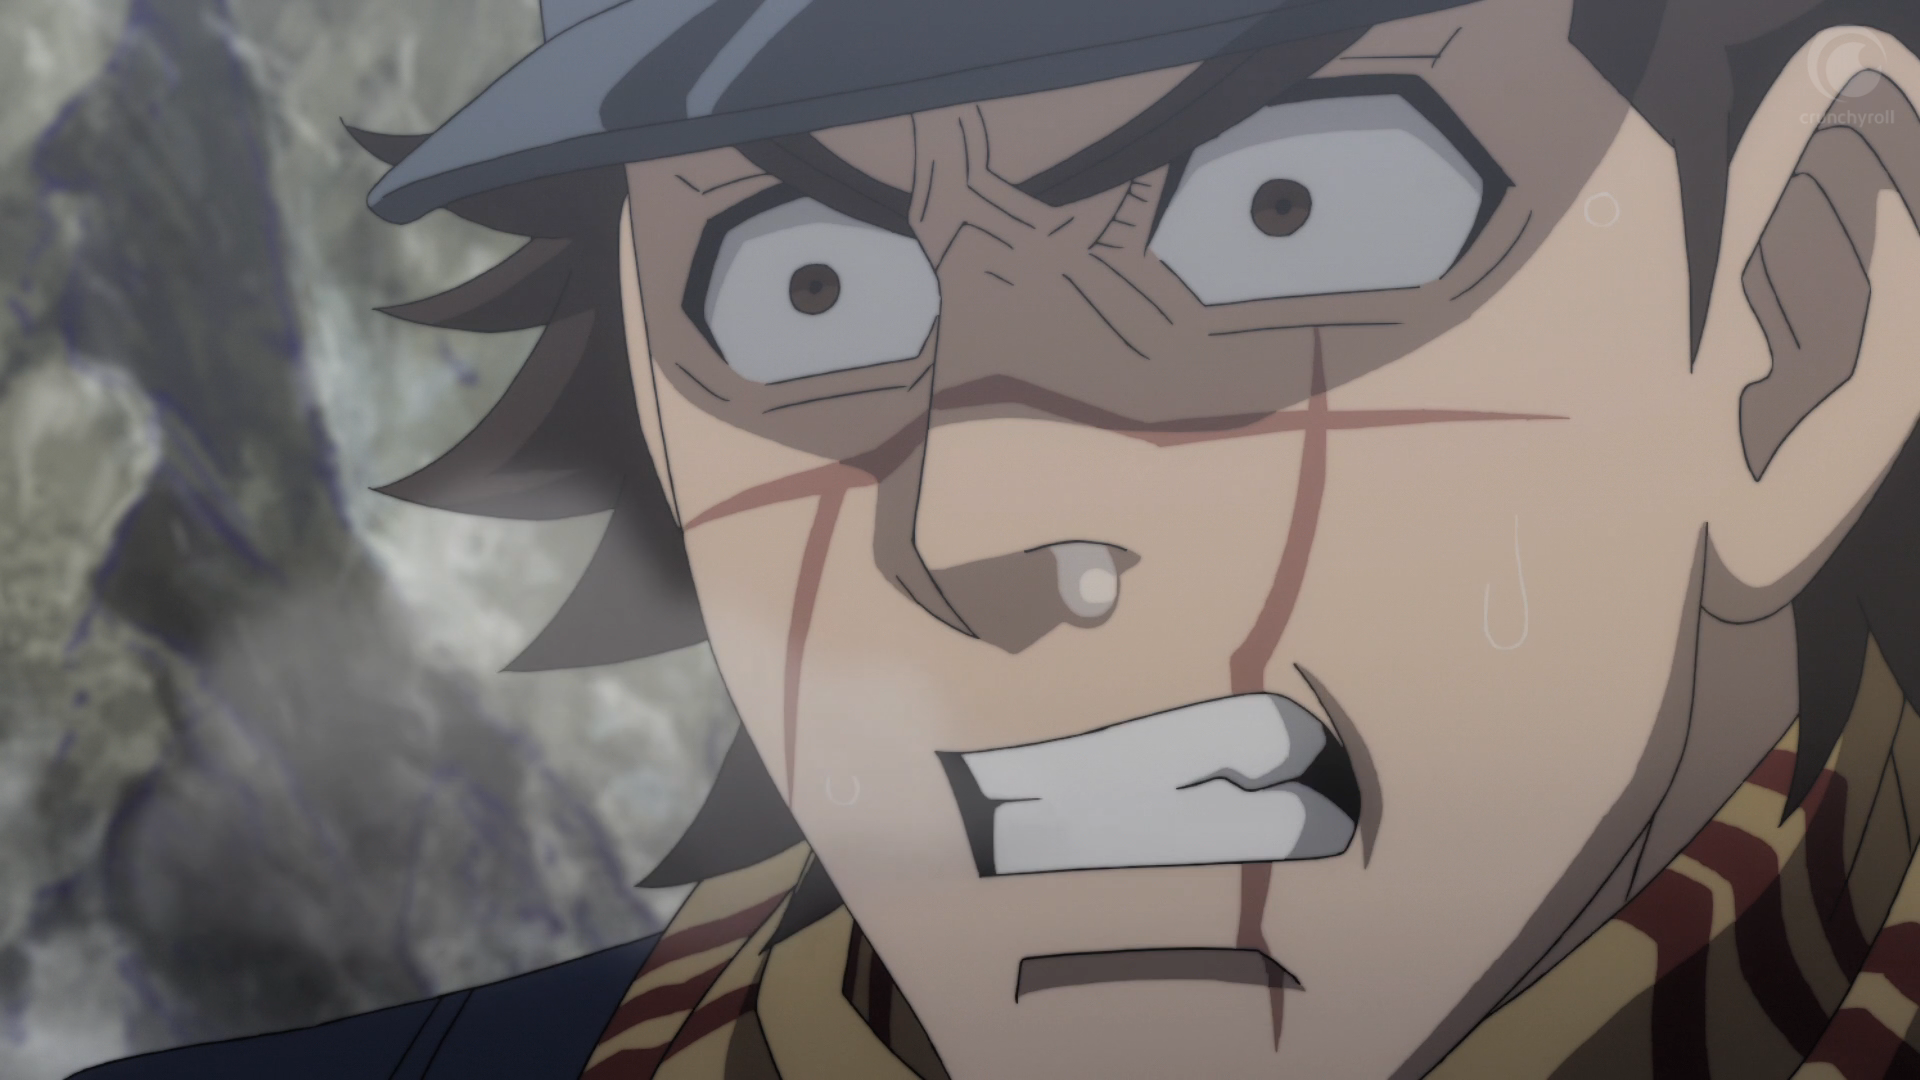 Golden Kamuy Episode 02 Anime Review Anime reviews